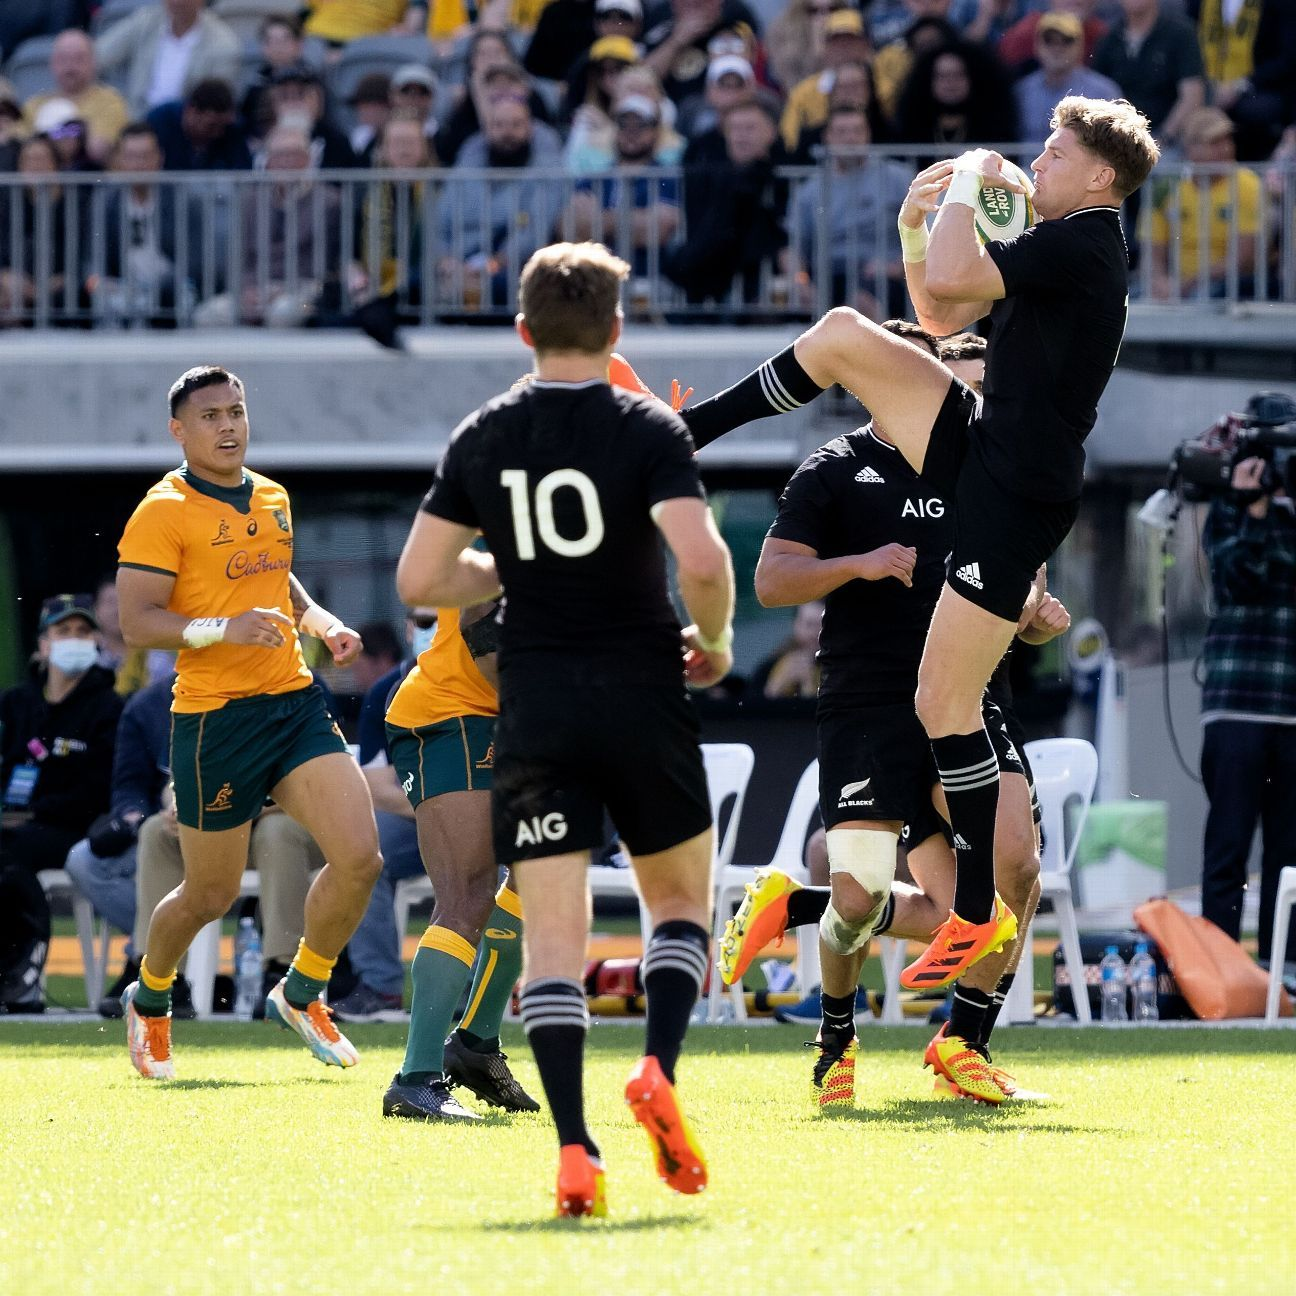 World Rugby sets limits for contact, set-piece training